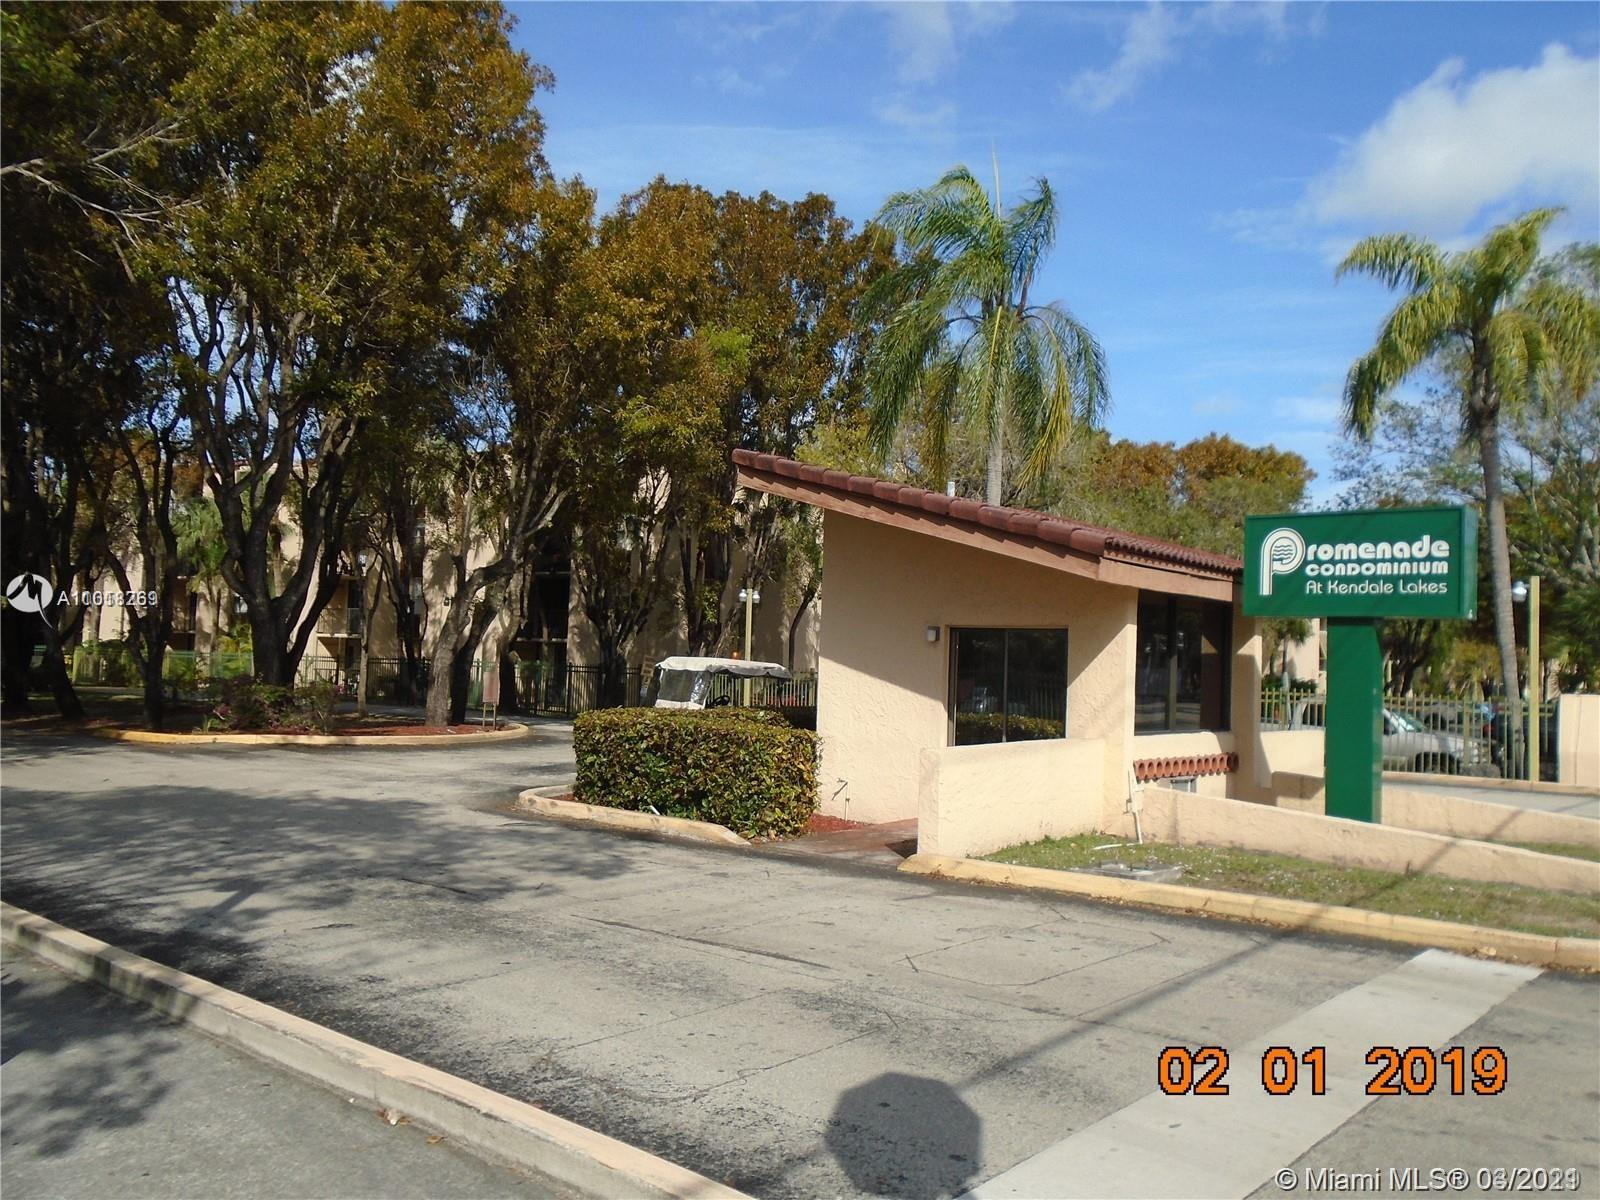 GREAT APARTMENT AT PROMENADE COMMUNITY. CENTRALLY LOCATED IN KENDALL WEST. FOURTH FLOOR. NICE COMPLEX WITH TENNIS COURTS, SECURITY, CLUBHOUSES. EXCELLENT INCOME PROPERTY. NO RESTRICTION ON RENTALS. WATER AND CABLE INCLUDED IN RENT. CALL L.A FOR MORE INFORMATION.